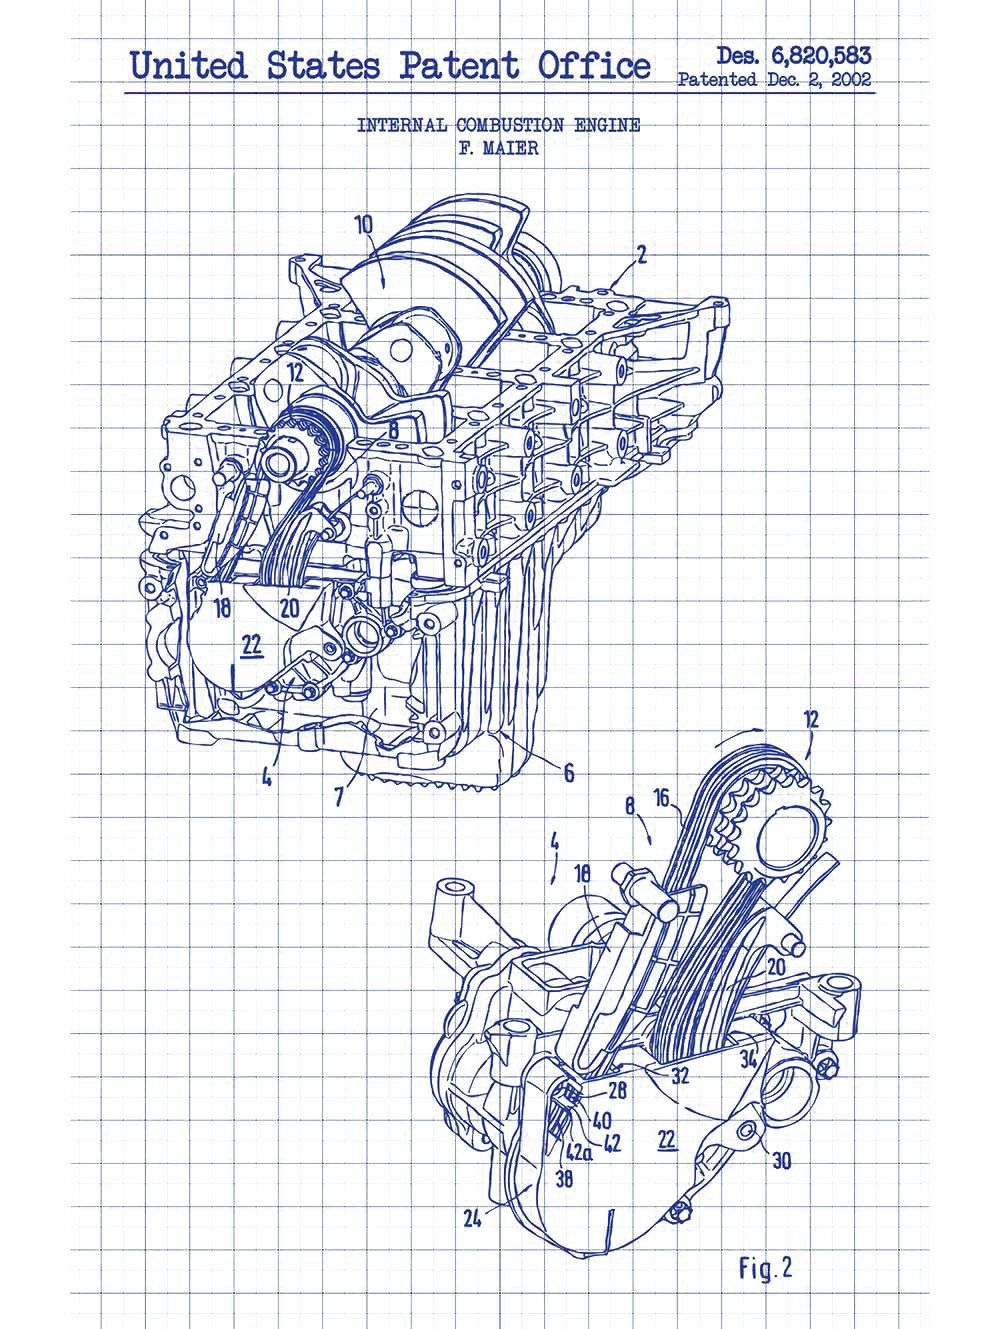 Combustion Engine No. 1 - F. Maier - 2002